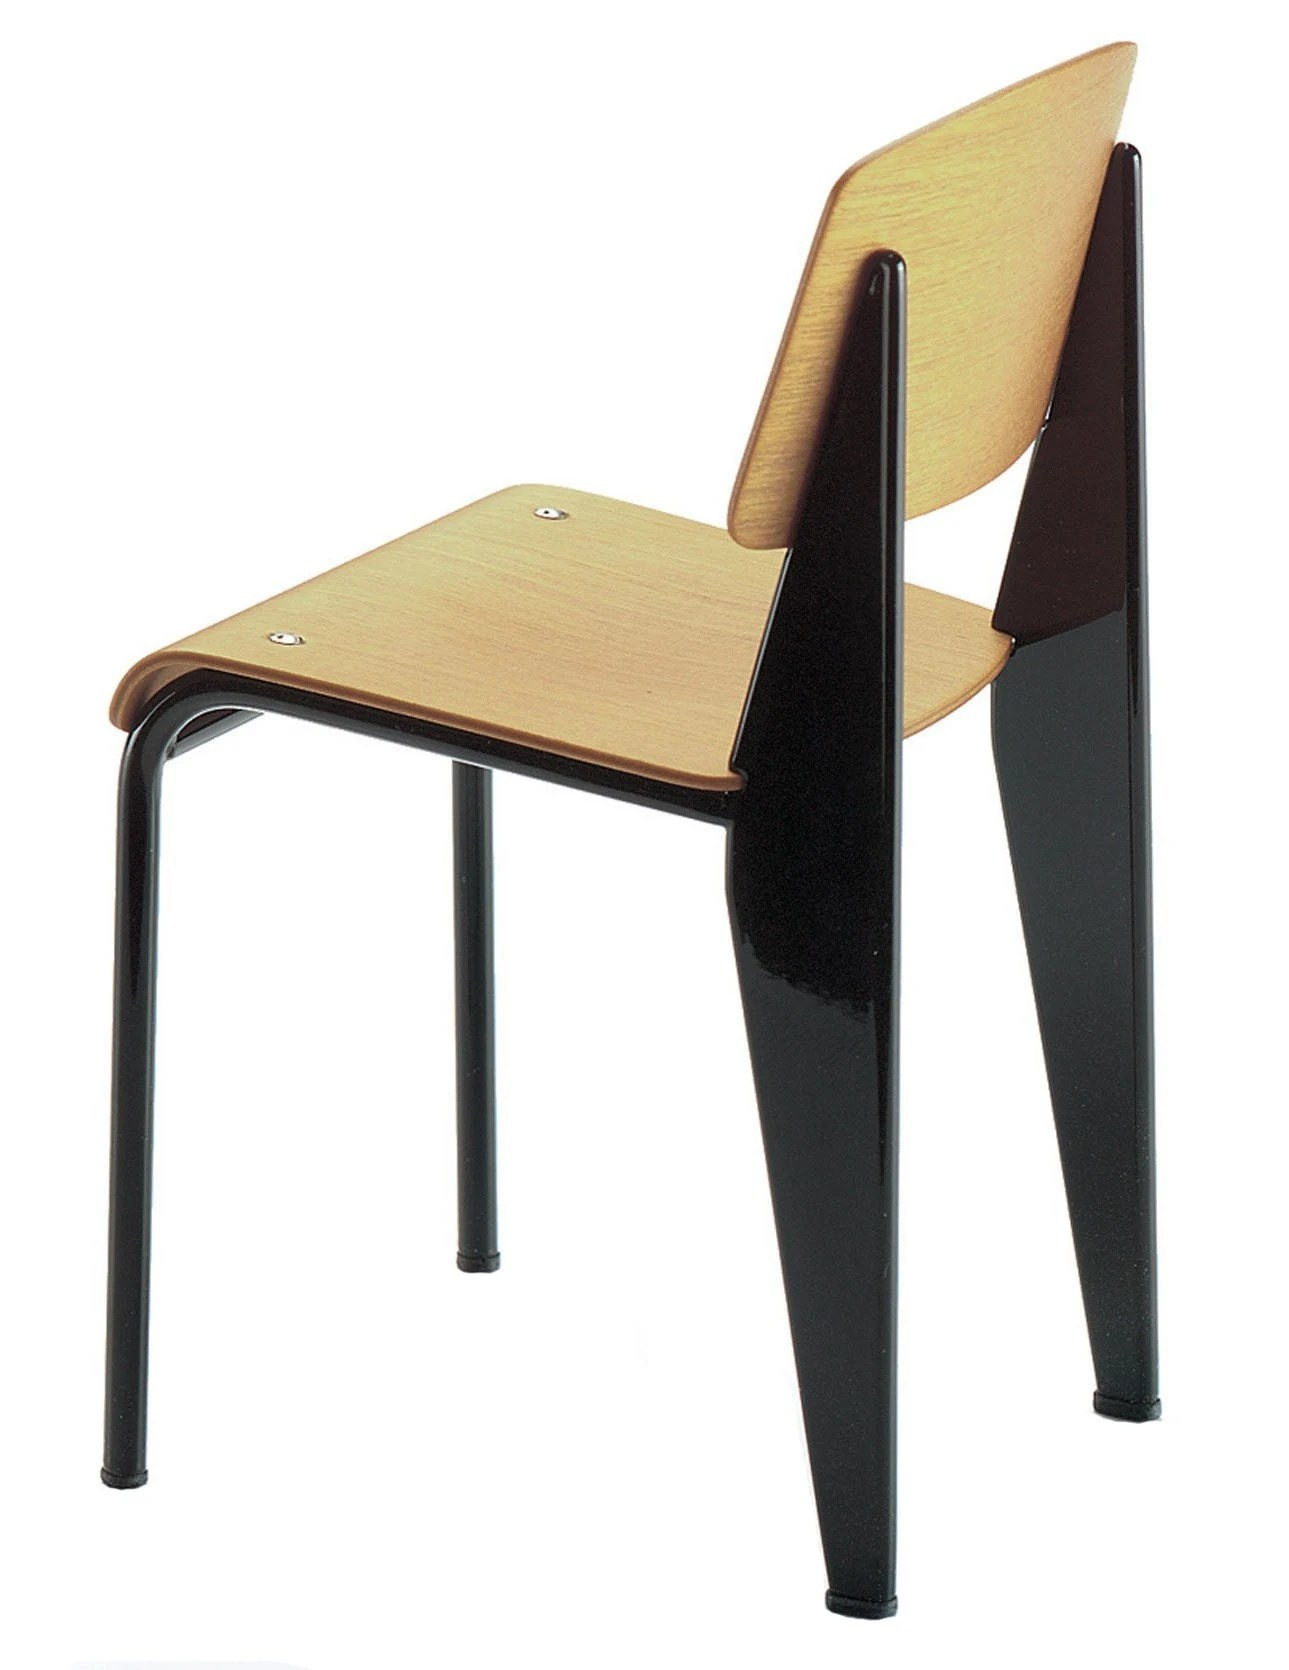 Modern Furniture History Vitra Miniatures Standard Chair